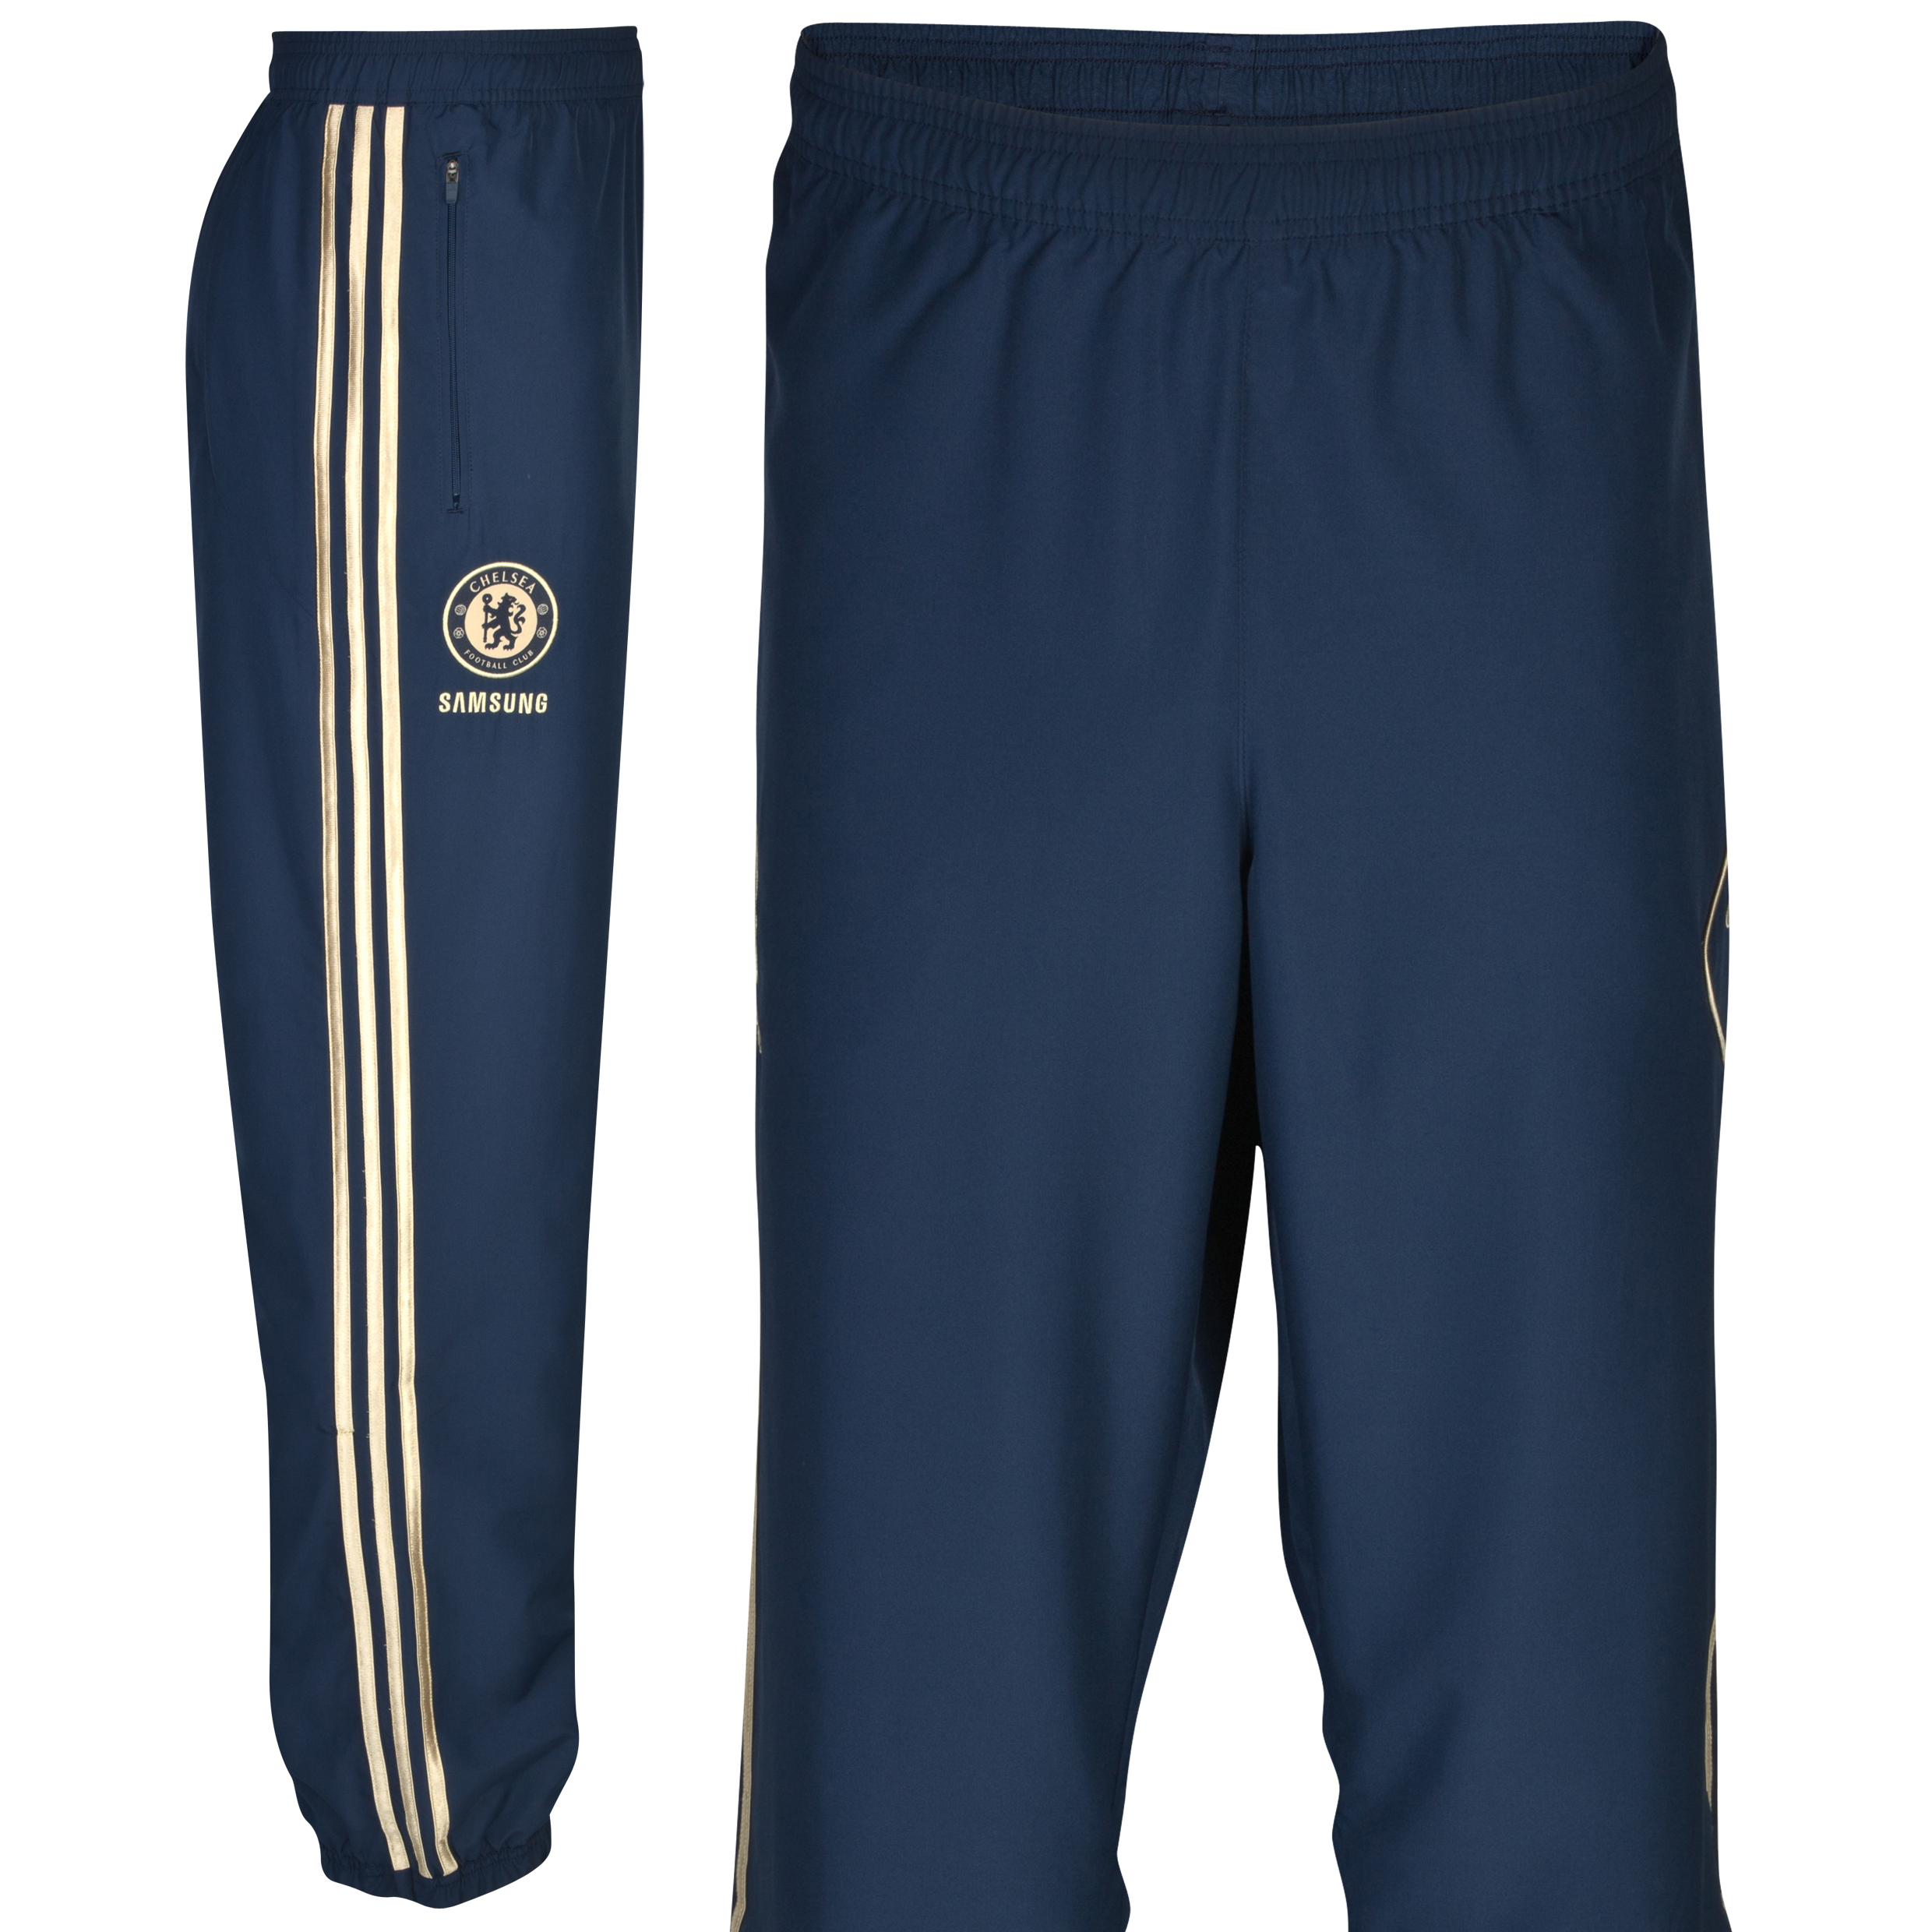 adidas Chelsea Training Presentation Pant - Collegiate Navy/Light Football Gold - Kids